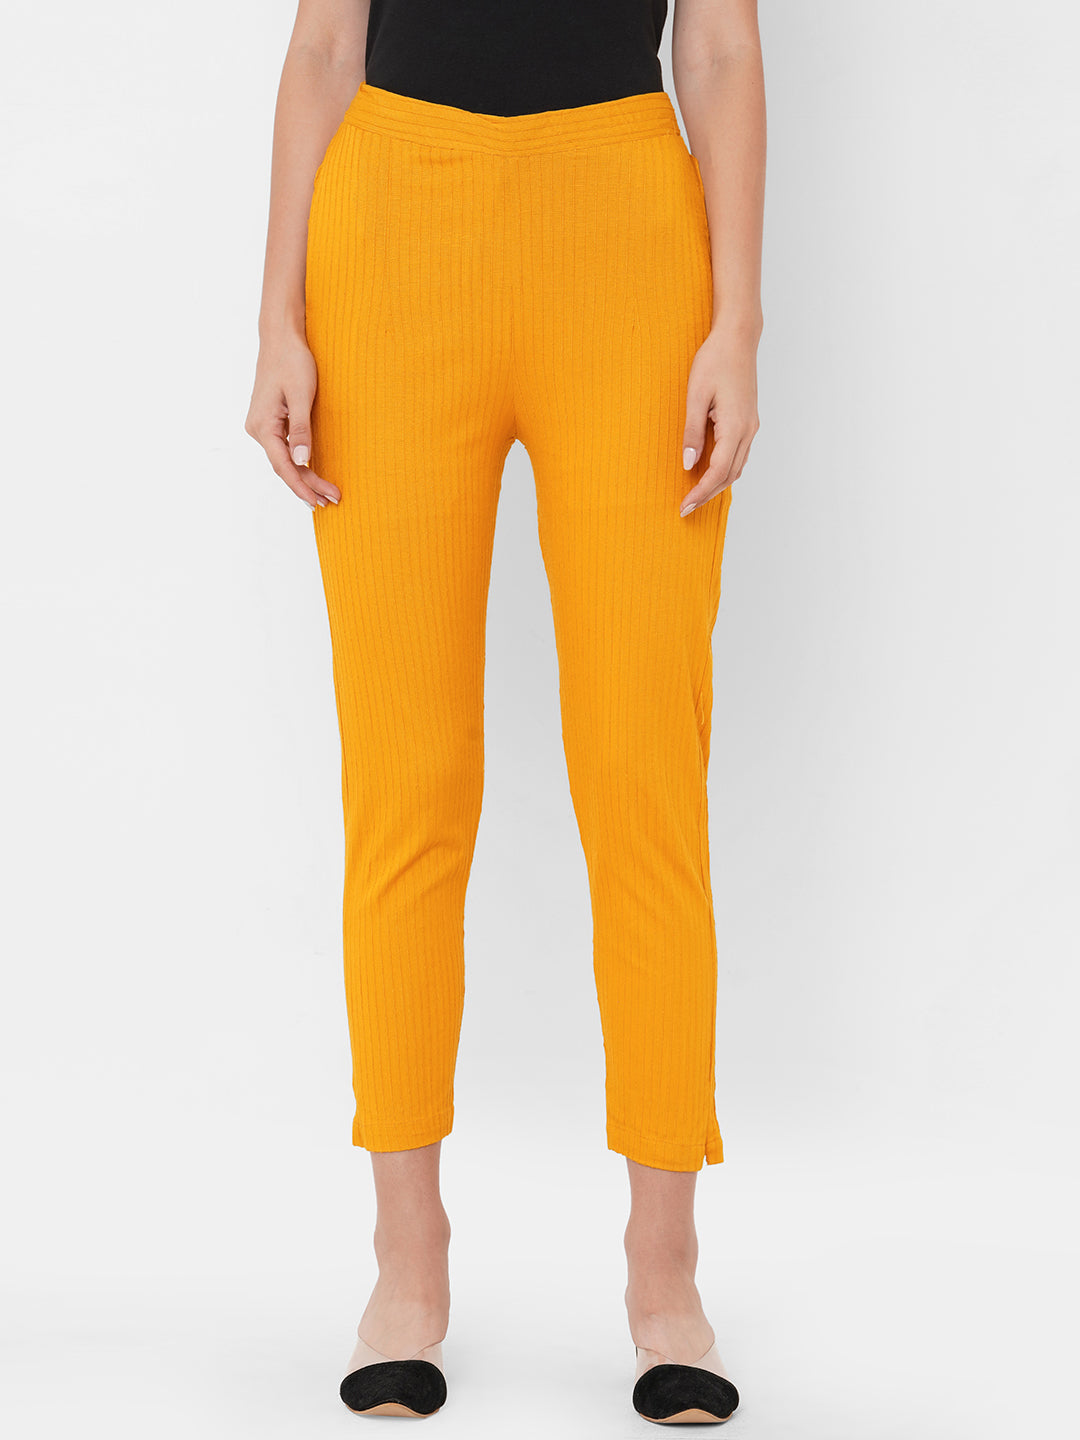 Woven Striped Solid Lycra Pant - Mustard